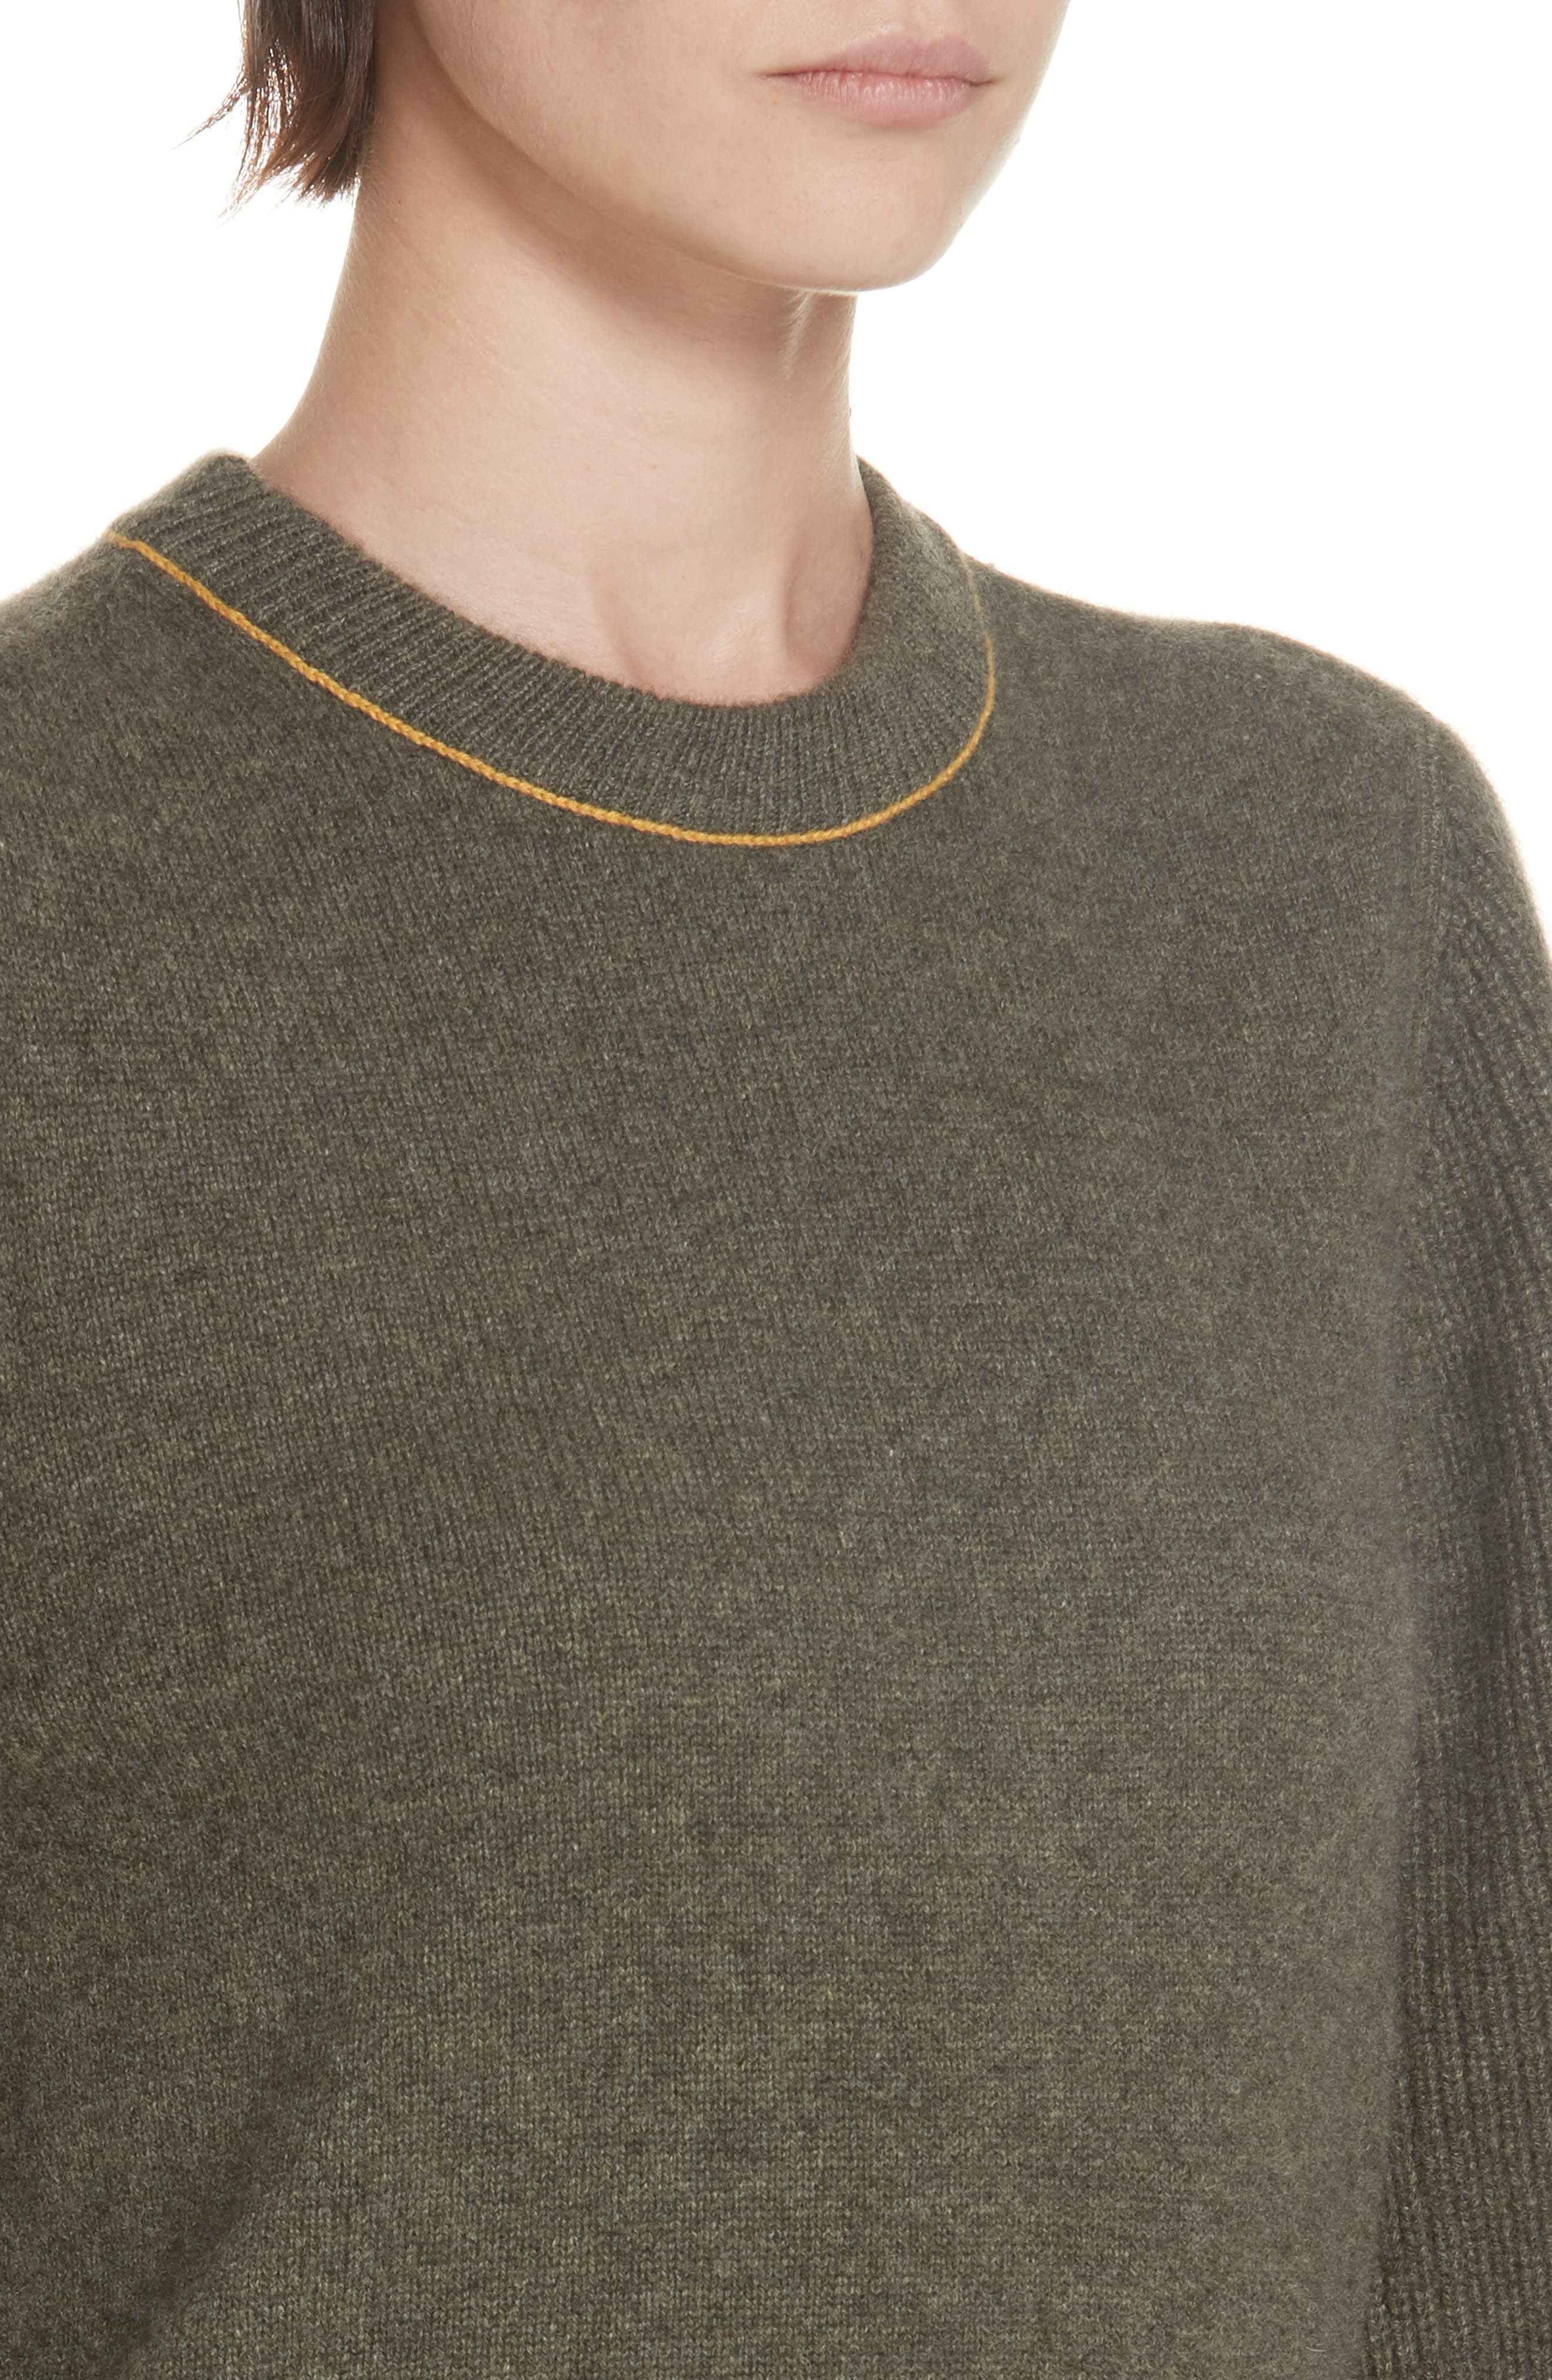 Yorke Cashmere Sweater,                             Alternate thumbnail 4, color,                             ARMY